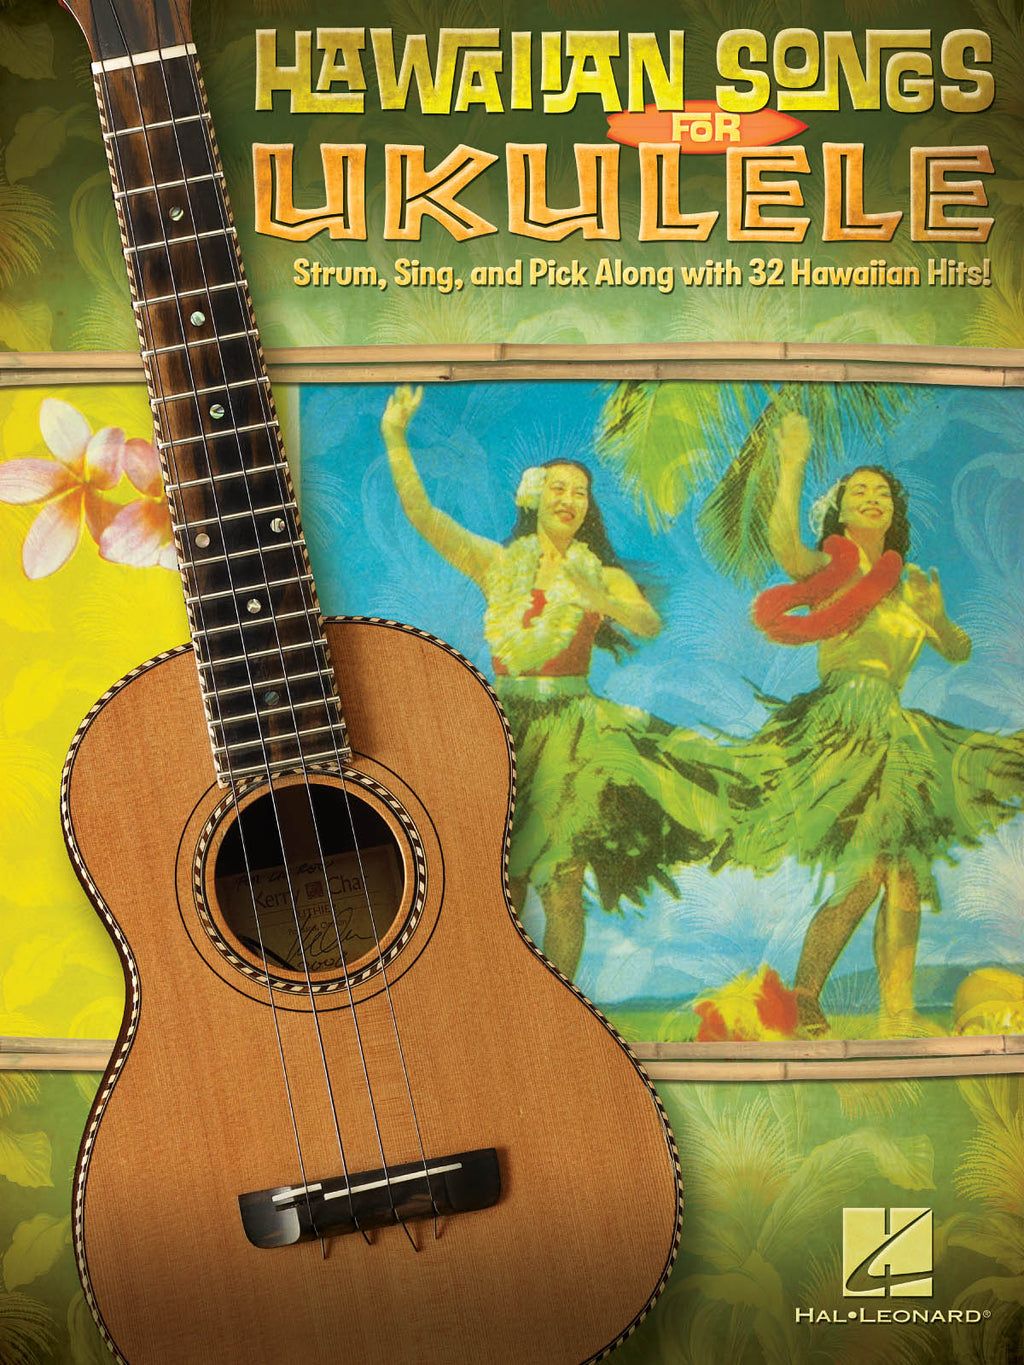 Hawaiian Songs for Ukulele - Instructional Songbook